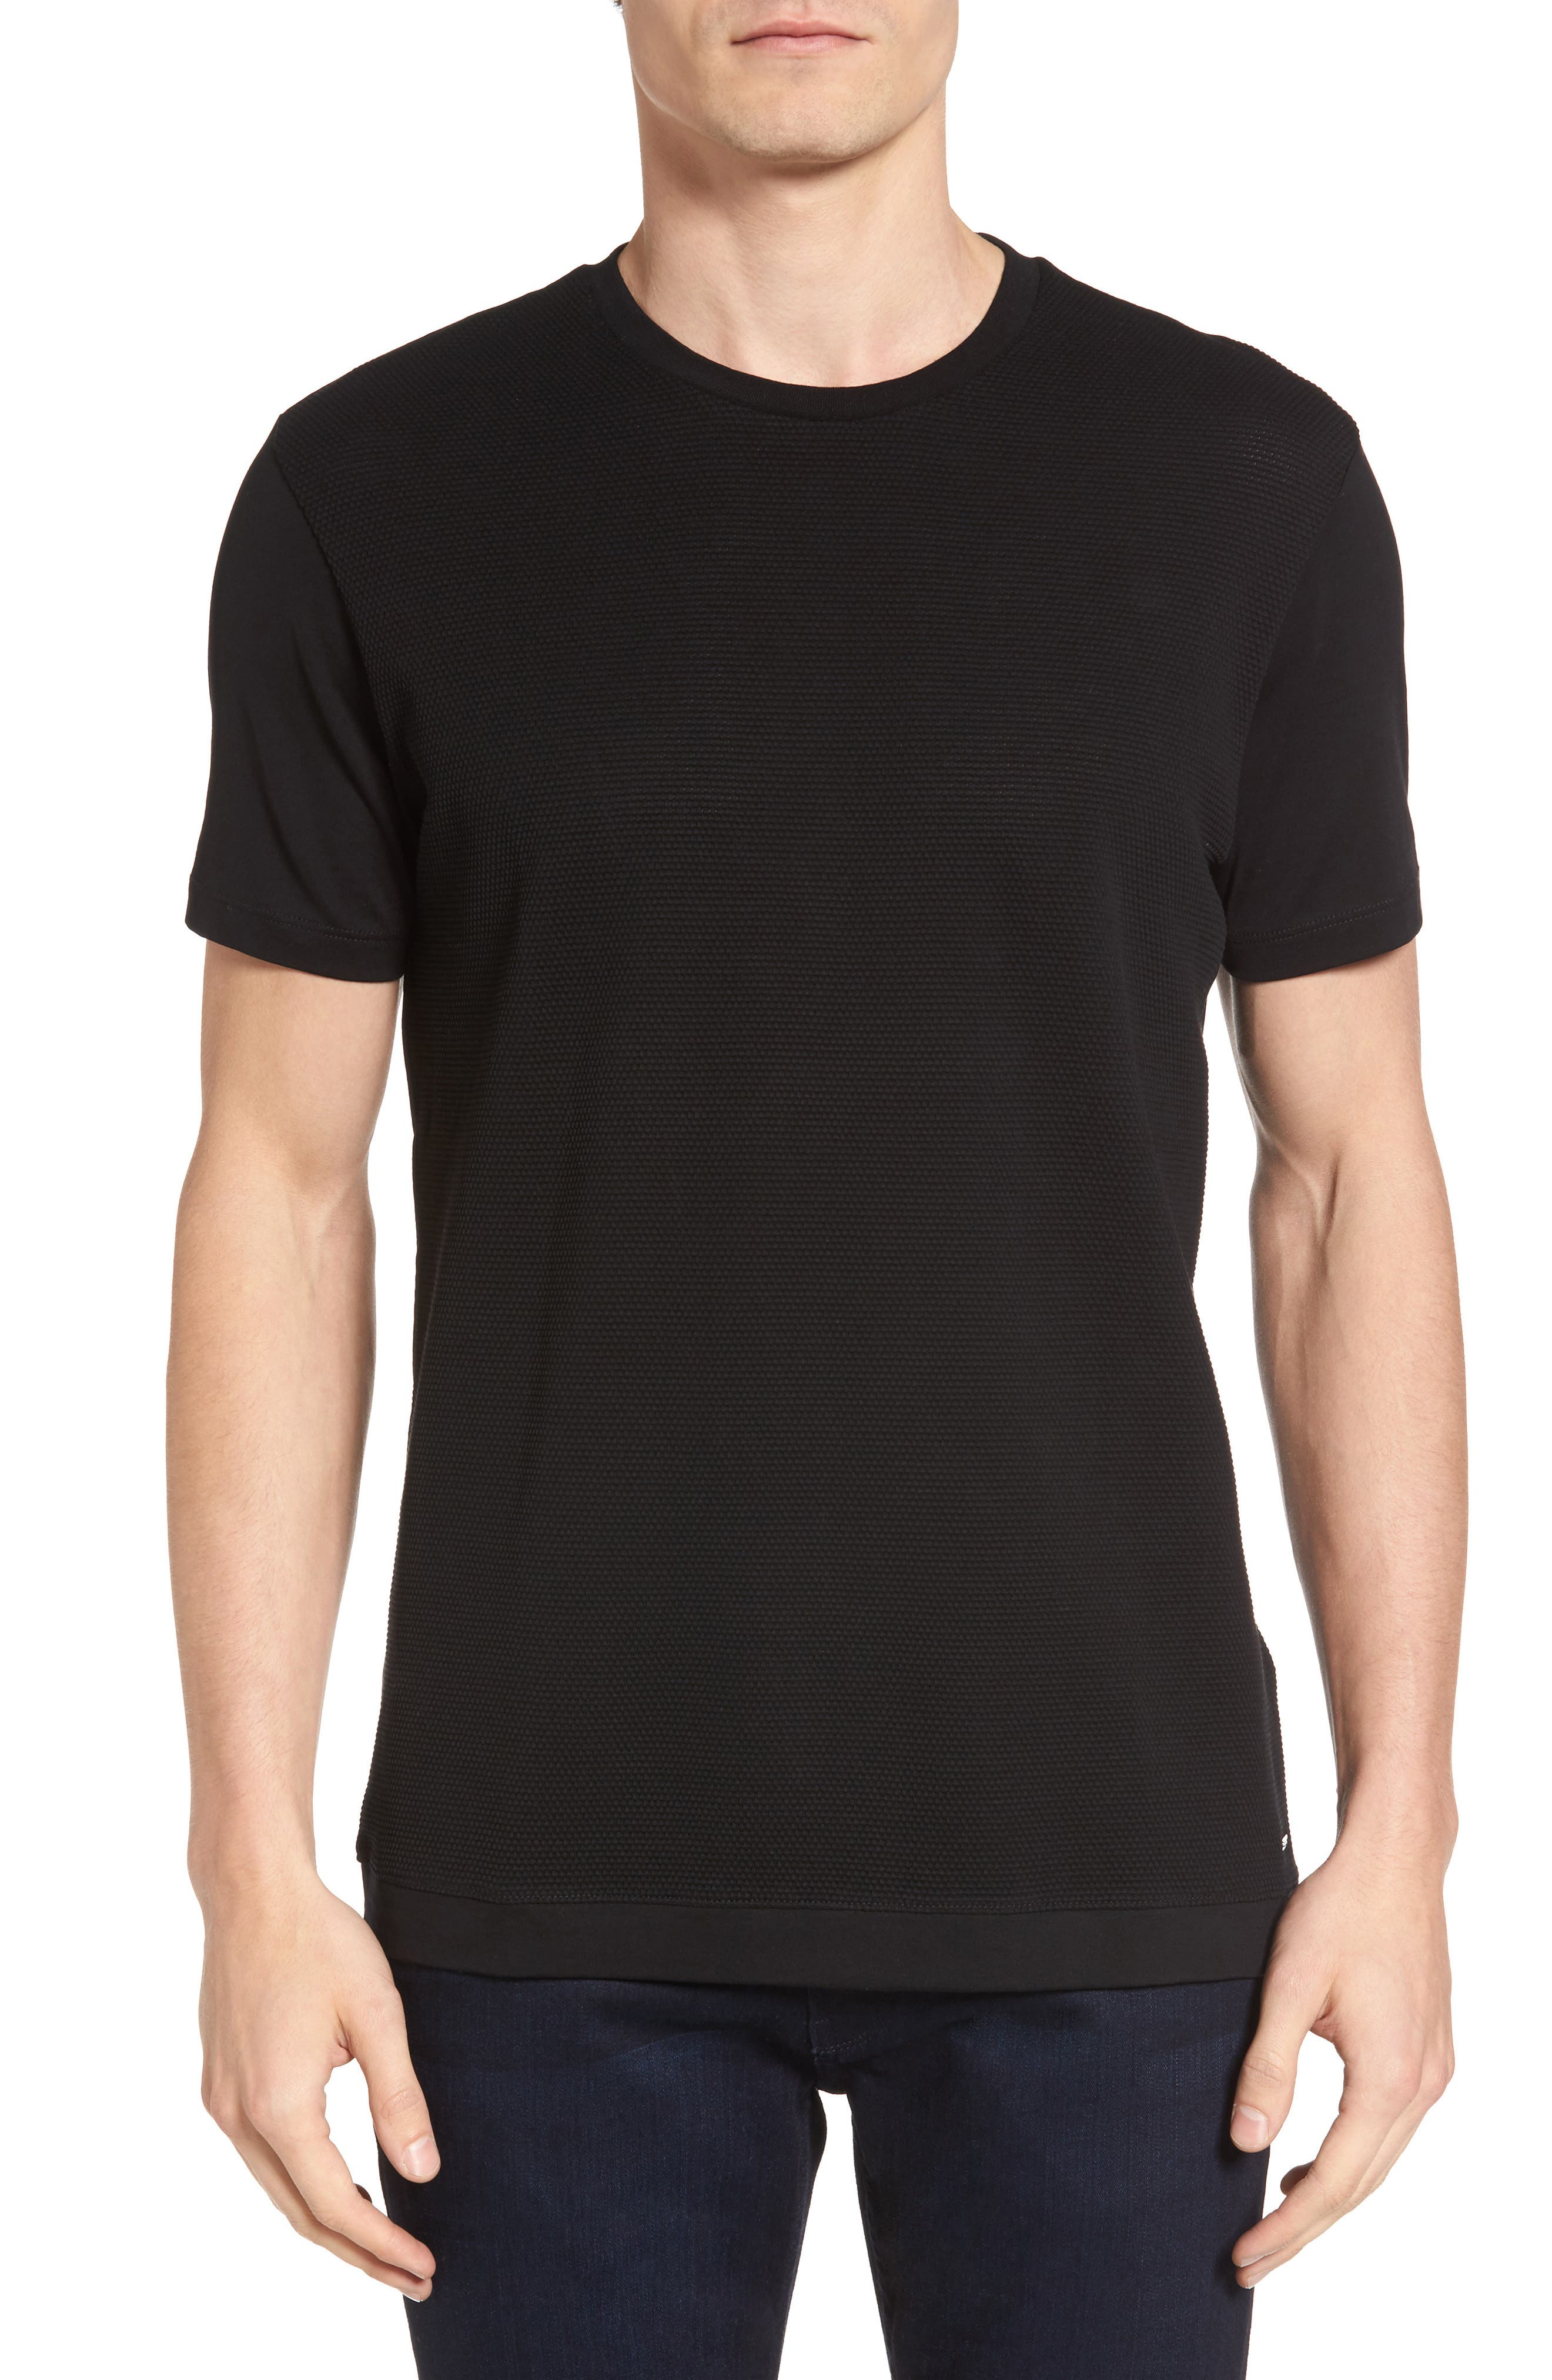 Tessler Micropattern T-Shirt,                             Main thumbnail 1, color,                             Black